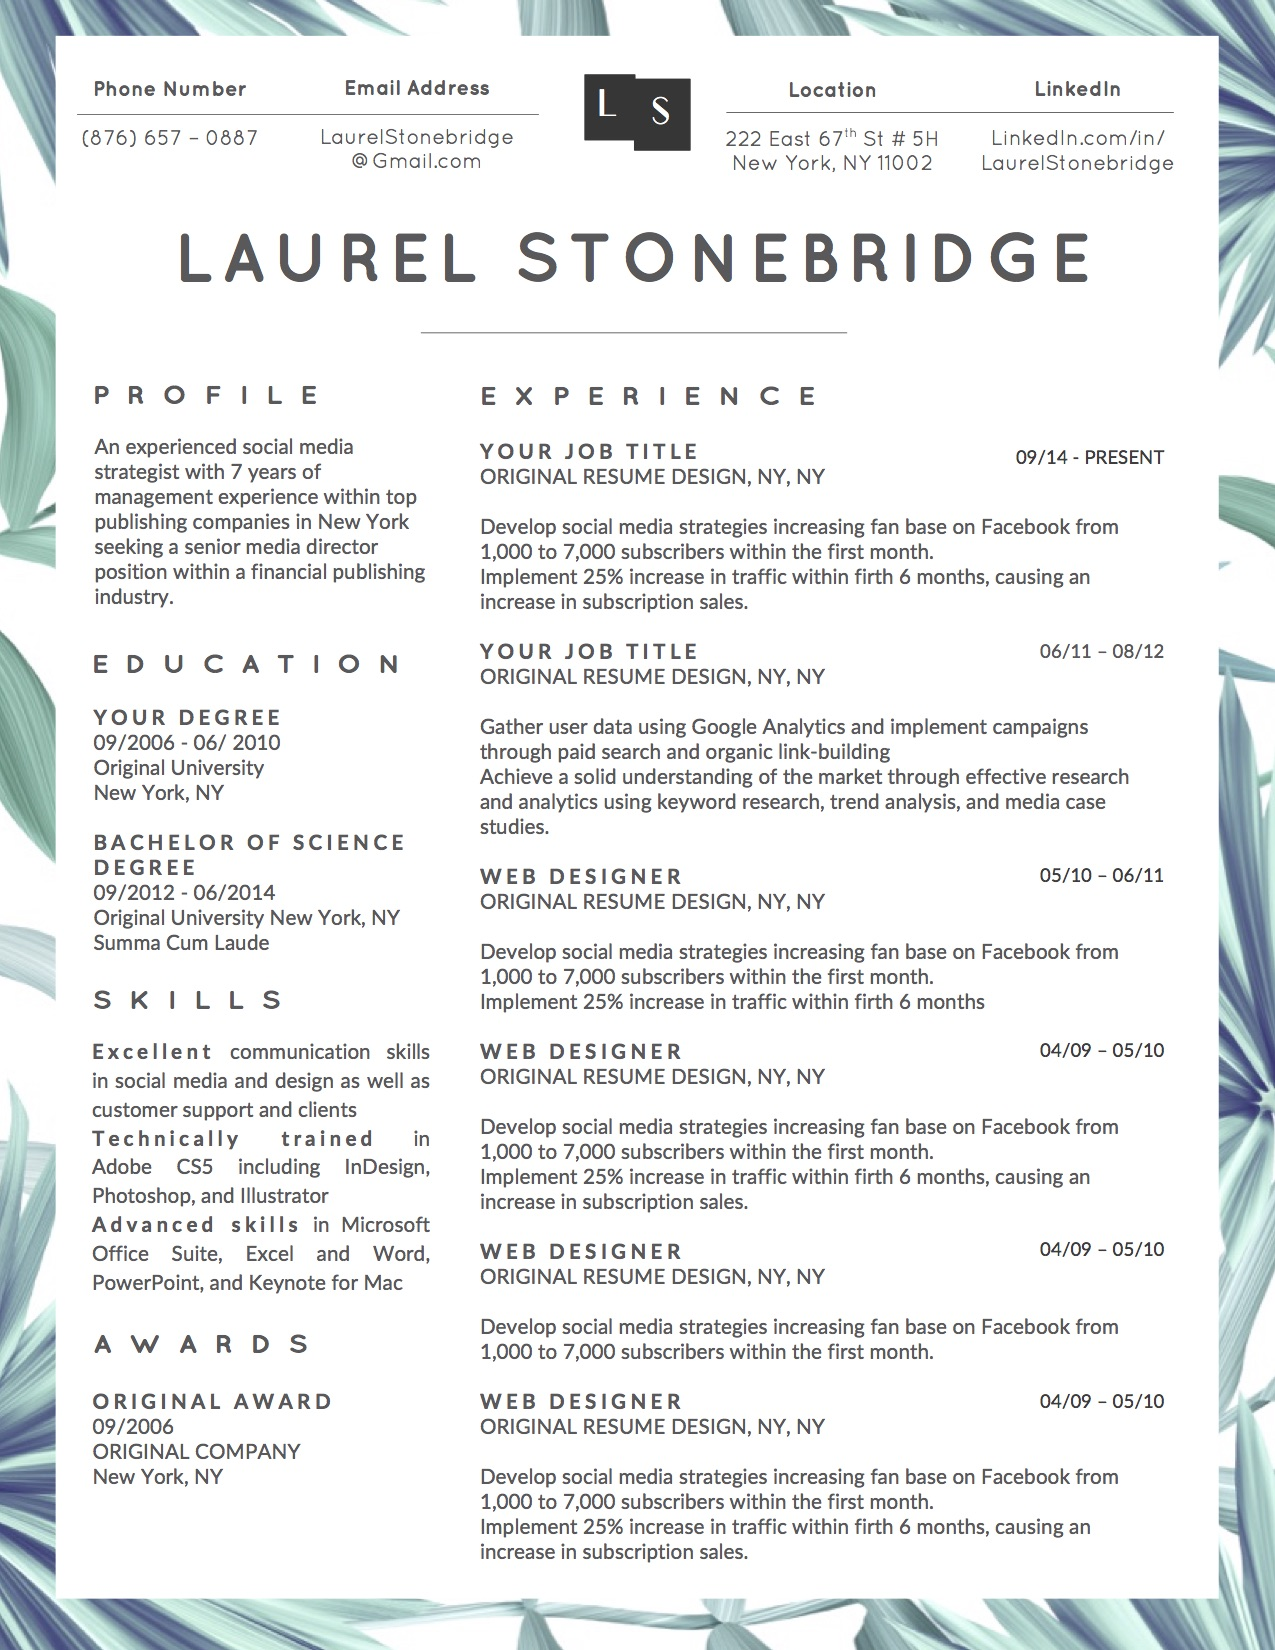 Laurel Stonebridge Downloadable Resume + Cover Template and Cover Letter Template for Microsoft Word and Apple Pages. This cover letter template is perfect for anyone in the fashion field. The template's design is a modern, unique, colorful, and professional. WE SWEAT THE DETAILS, SO YOU DON'T HAVE TO Stand Out Shop resume templates for Microsoft Word and Apple Pages will help you design a modern and professional resume in minutes! Simply download, open in Microsoft Word or Apple Pages, and input your resume's information. Increase your chances of landing your dream job with a job winning, modern, simple, and scannable resume template for Microsoft Word and Apple Pages. Creating a resume shouldn't suck Simply download a resume template from Stand Out Shop, enter your information in Microsoft Word or Apple Pages and get a beautifully formatted resume in seconds. Create a unique and vivid resume in minutes. Make an impressive resume. Customize your own layout in Microsoft Word or Apple Pages and introduce yourself in an impressive way. You can download your resume at any time. Stand out from other job seekers with a beautiful professional design.